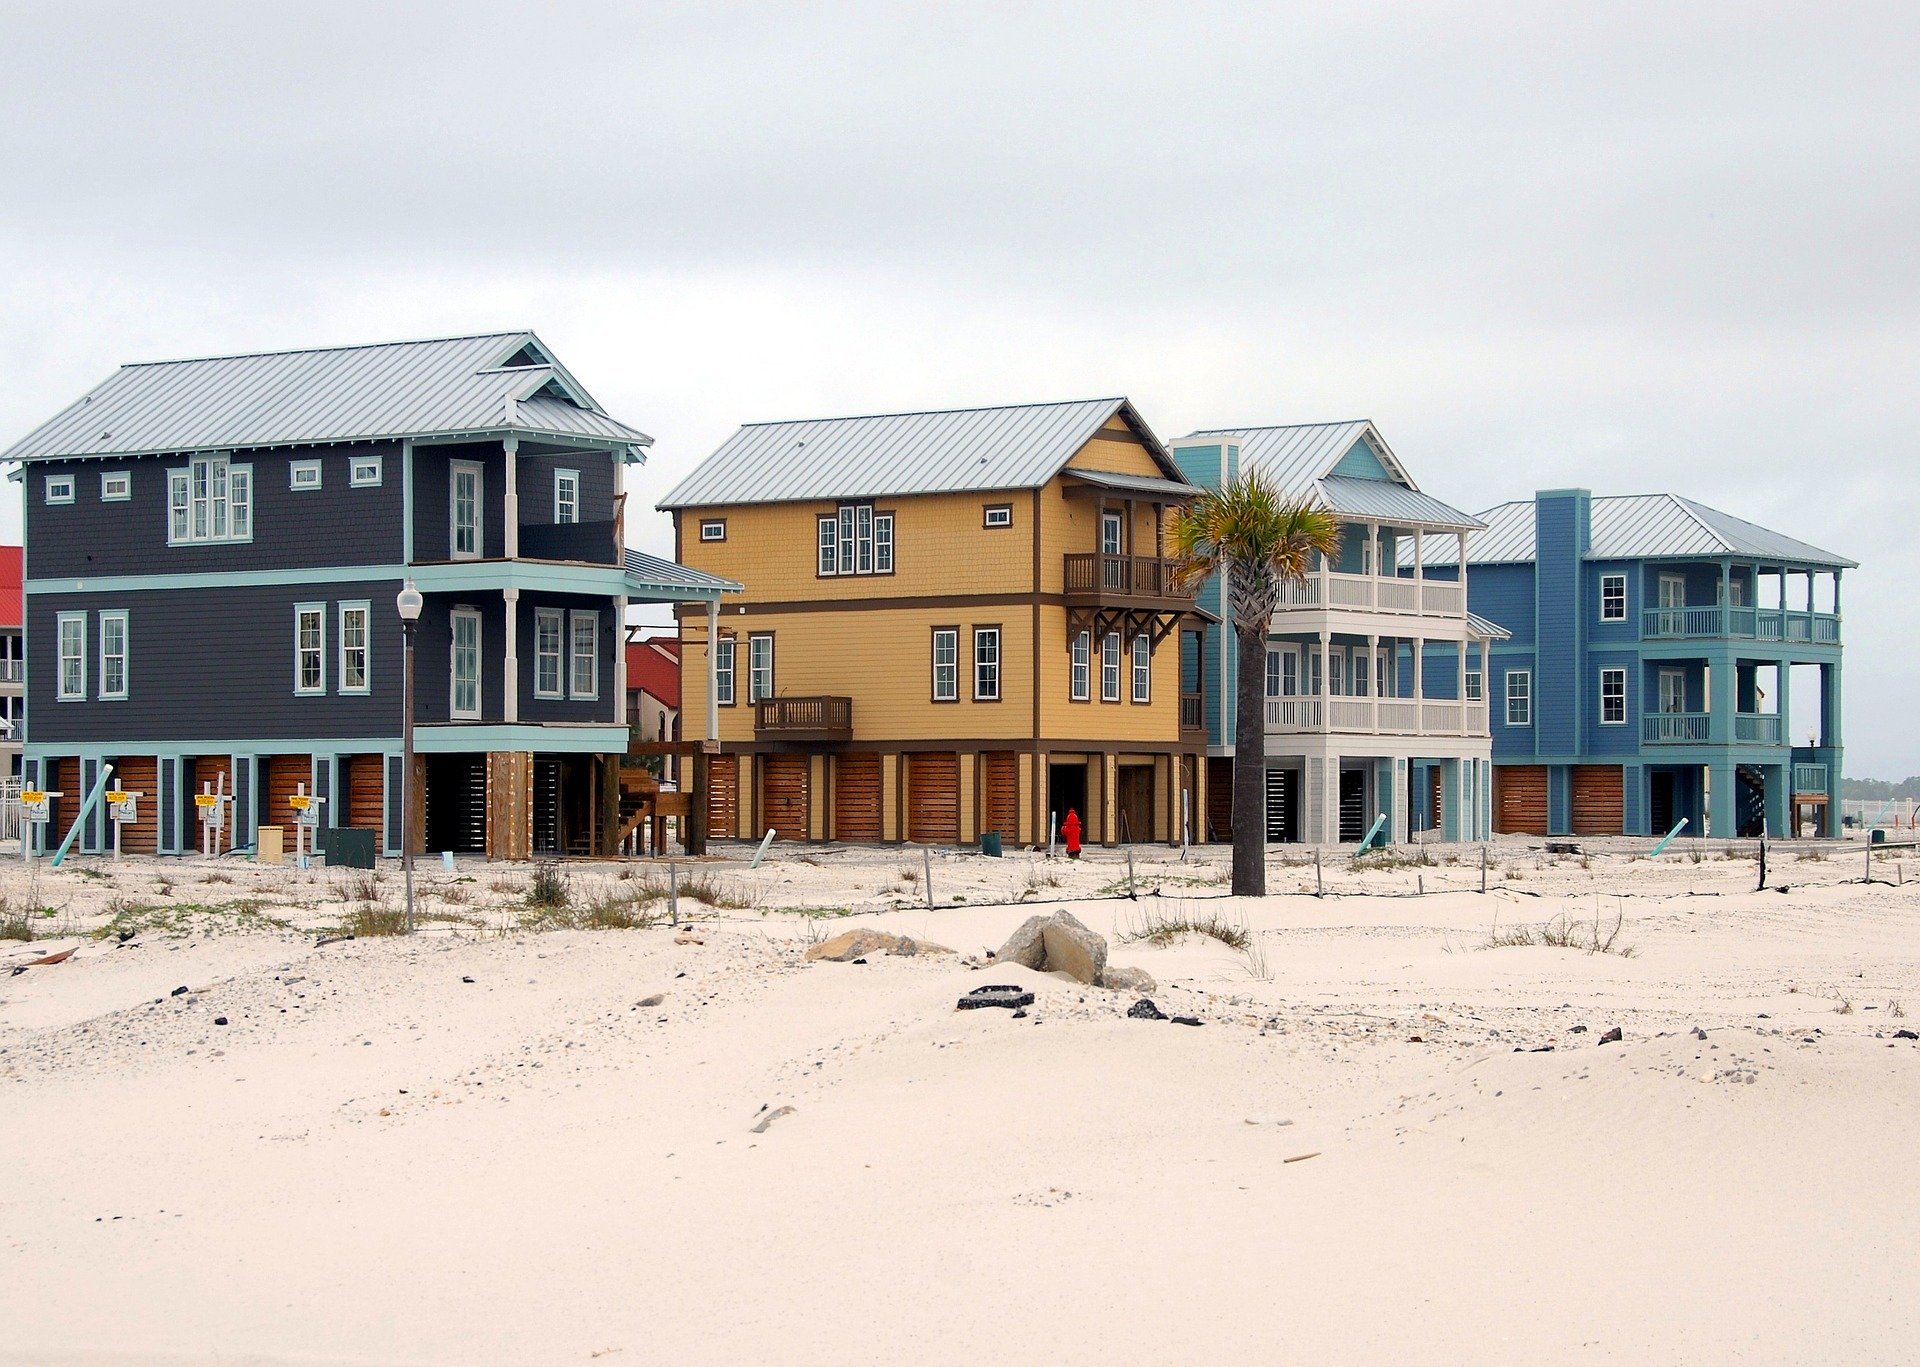 4 houses on the beach with sand and dunes representing why not to invest an IRA in real estate